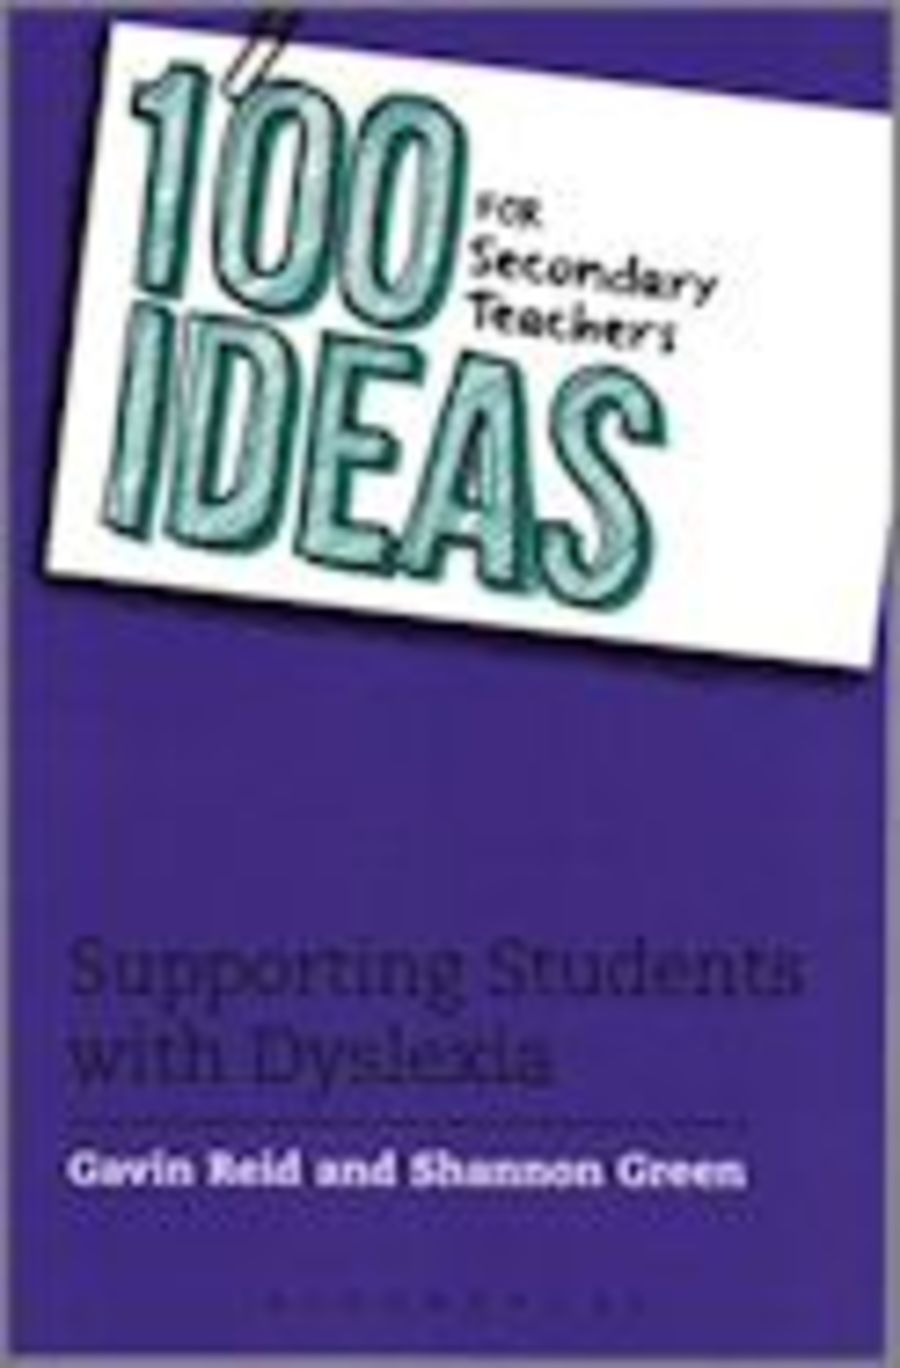 100 ideas for Supporting Students with Dyslexia for Secondary Teachers